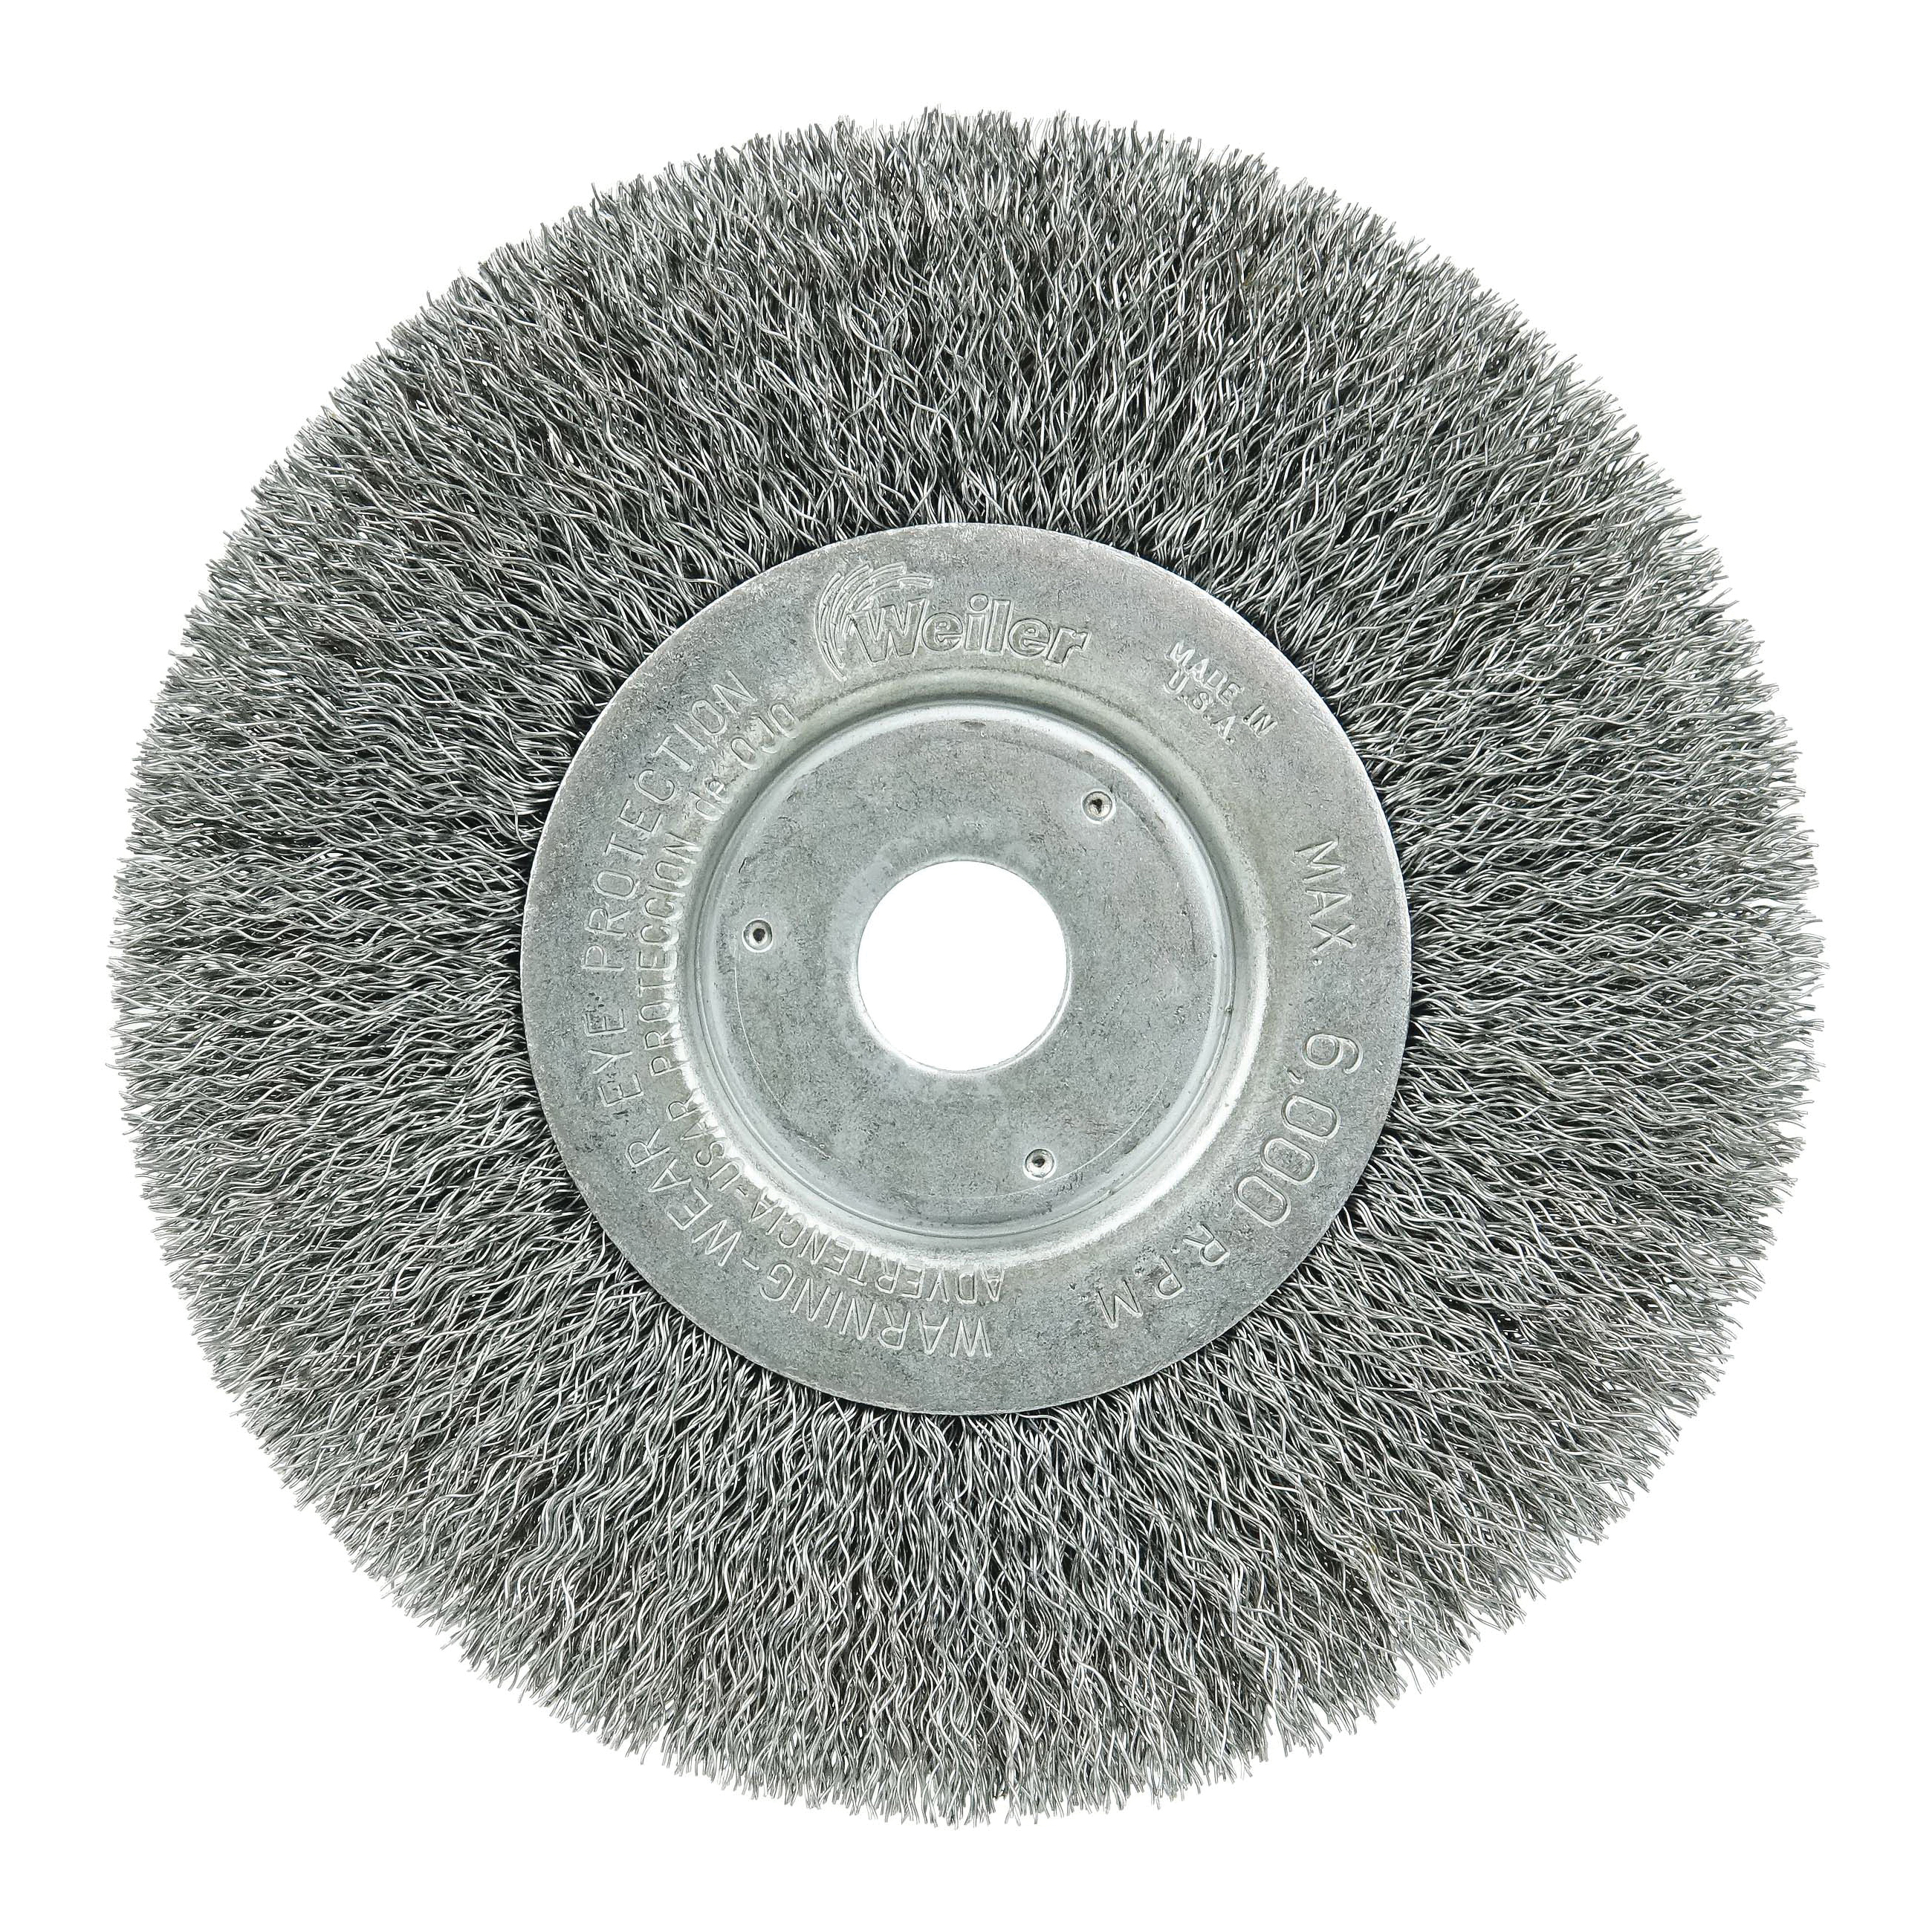 Weiler® 01055 Narrow Face Wheel Brush, 6 in Dia Brush, 3/4 in W Face, 0.0104 in Dia Crimped Filament/Wire, 1/2 to 5/8 in Arbor Hole